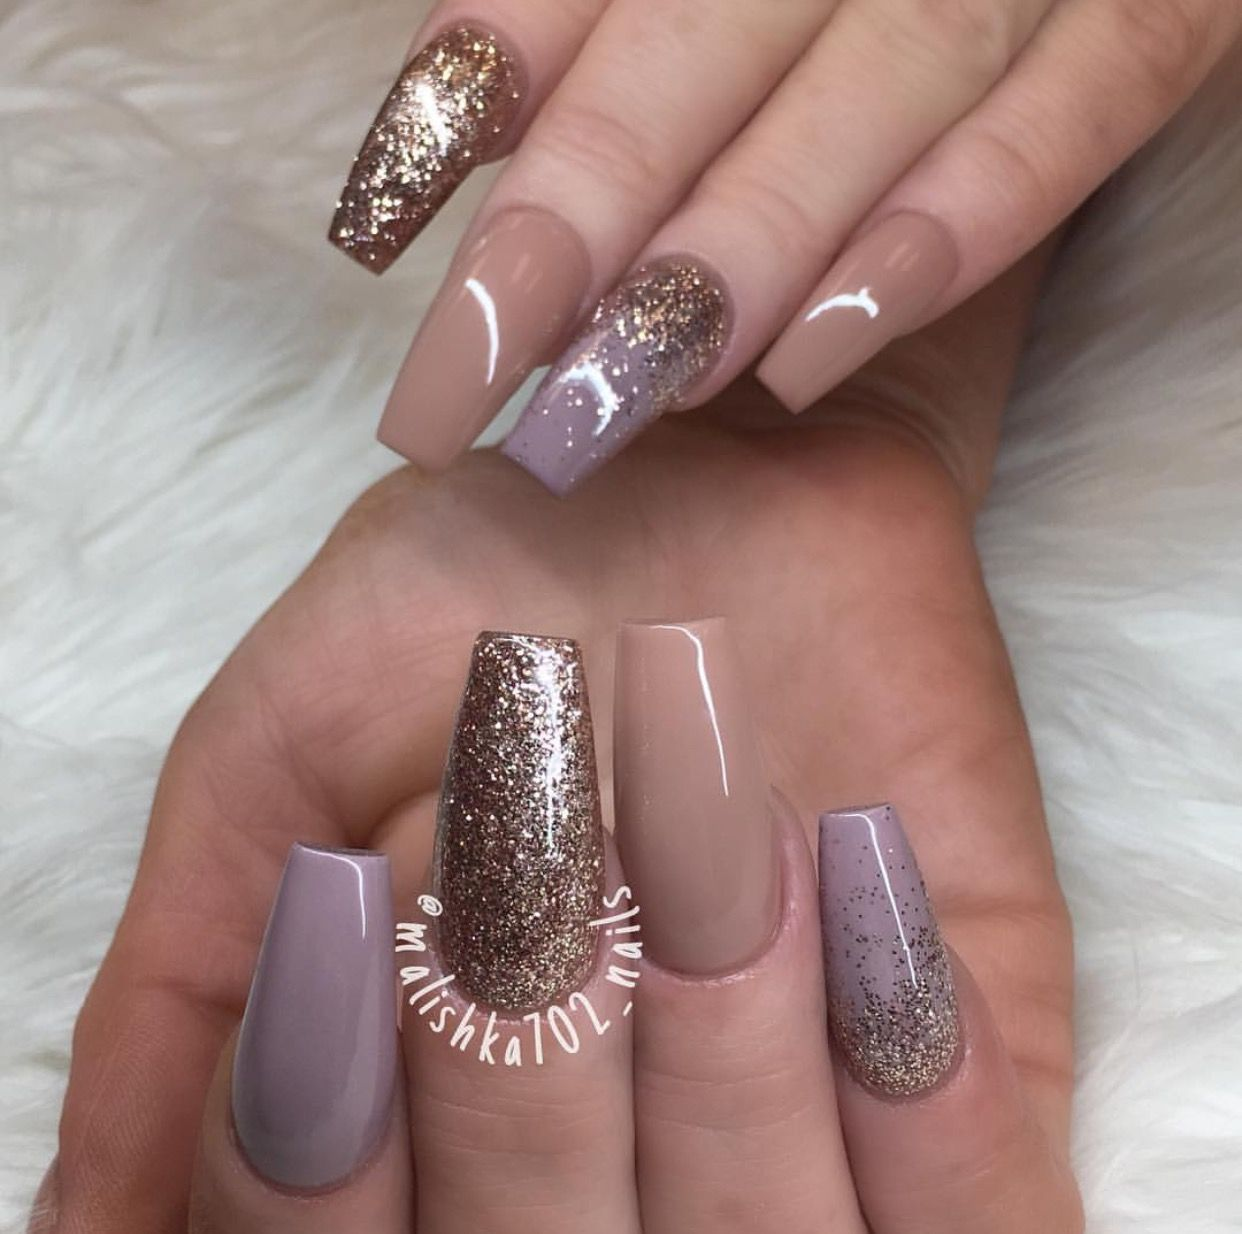 Cute Acrylic Nails Look Extremely Elegant And Sophisticated Covers Even Broken They Also Make Weak Strong